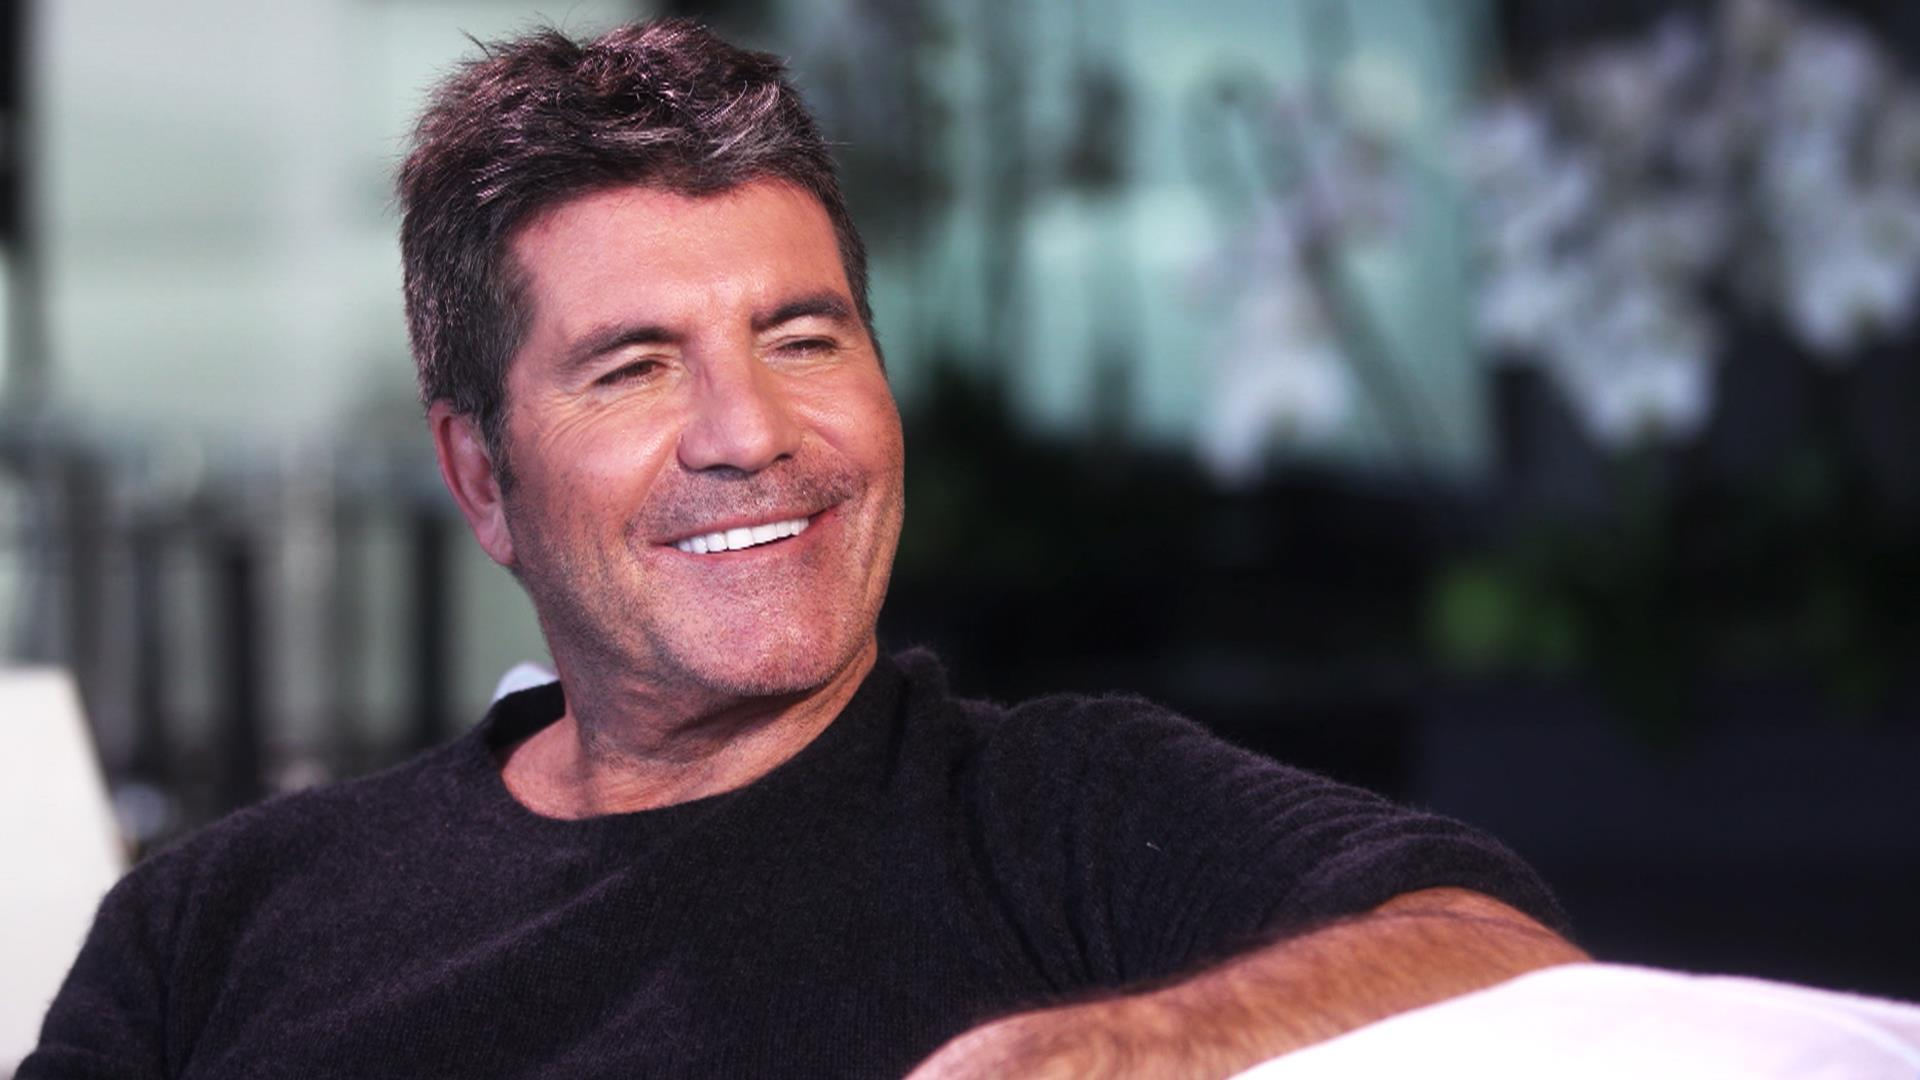 Simon Cowell says he will not be returning to 'American Idol